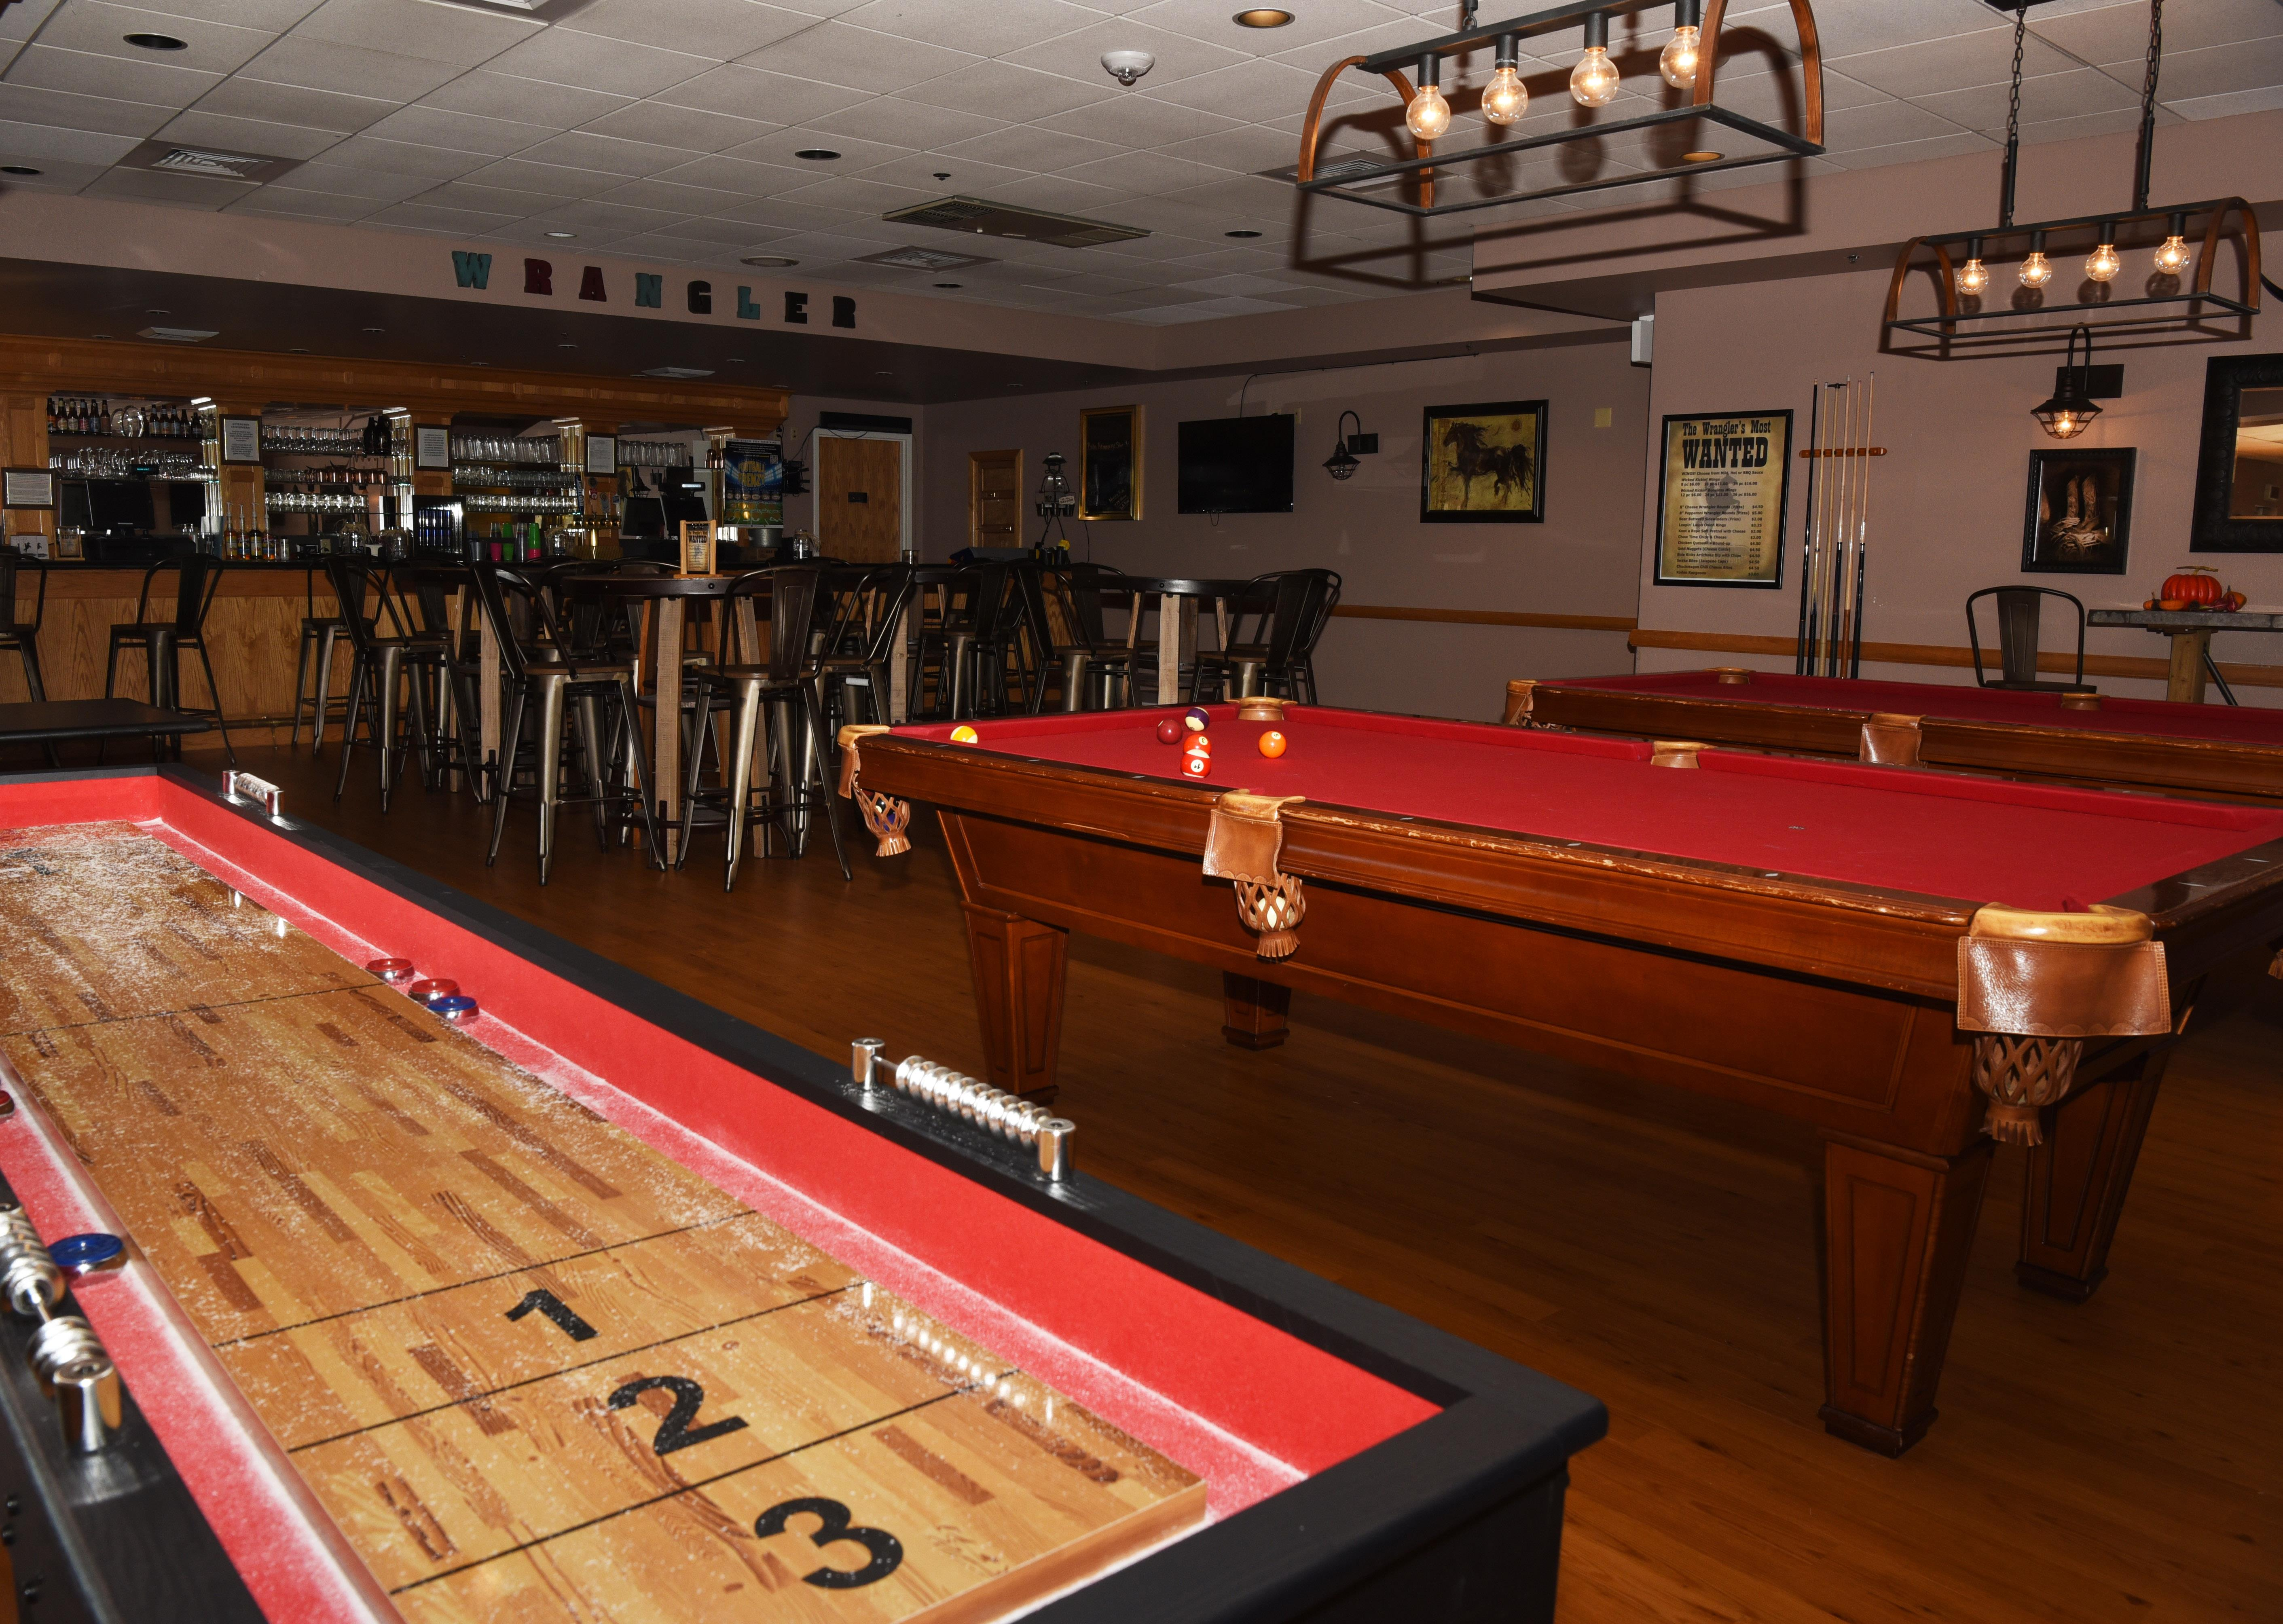 Photos - Pool table wanted